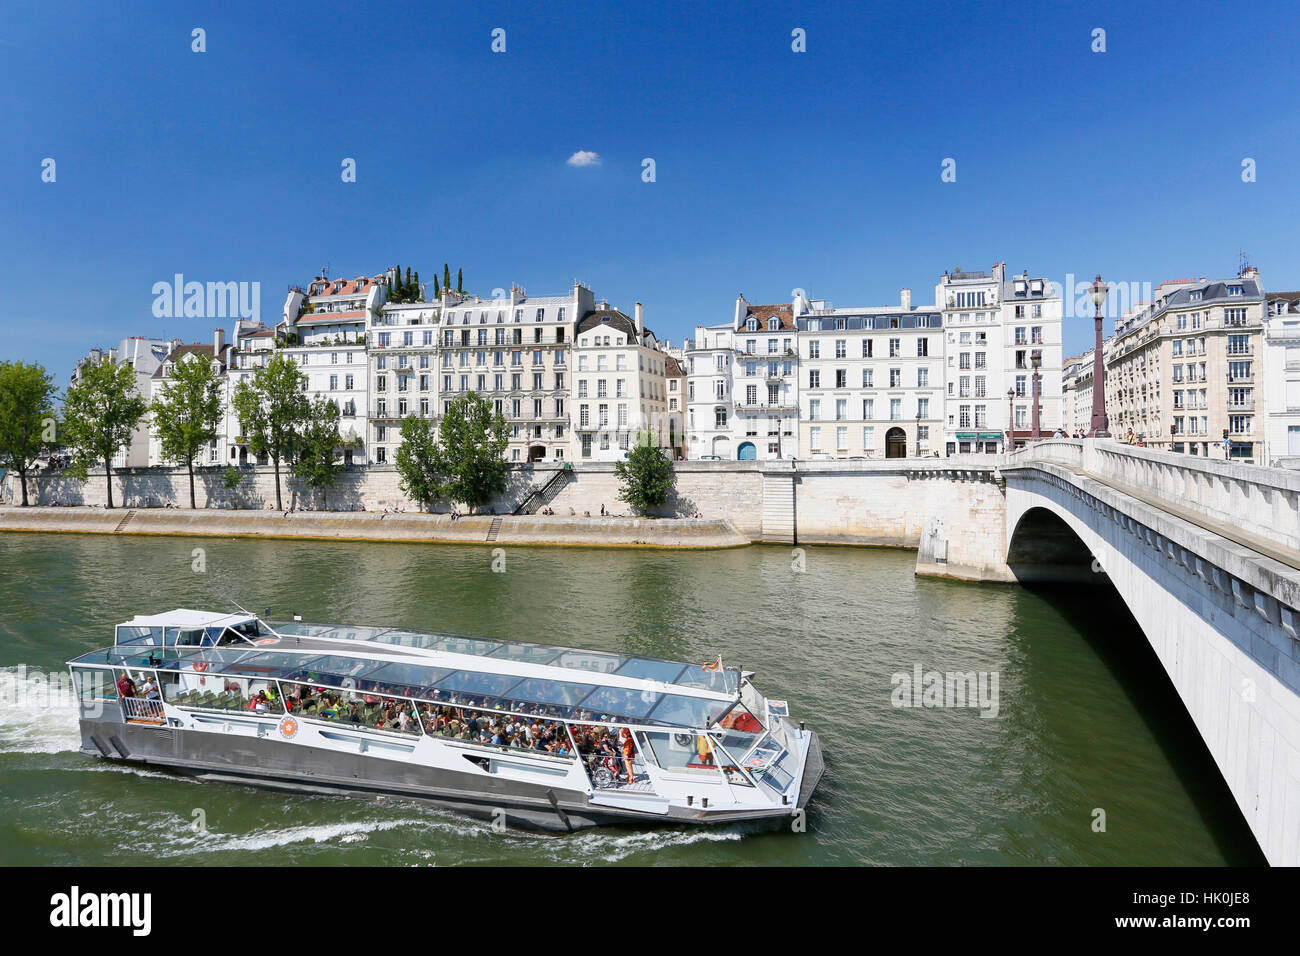 France, Paris. 4th arrondissement. The Ile Saint Louis. Boat on the Seine. Tournelle Bridge in the foreground on - Stock Image